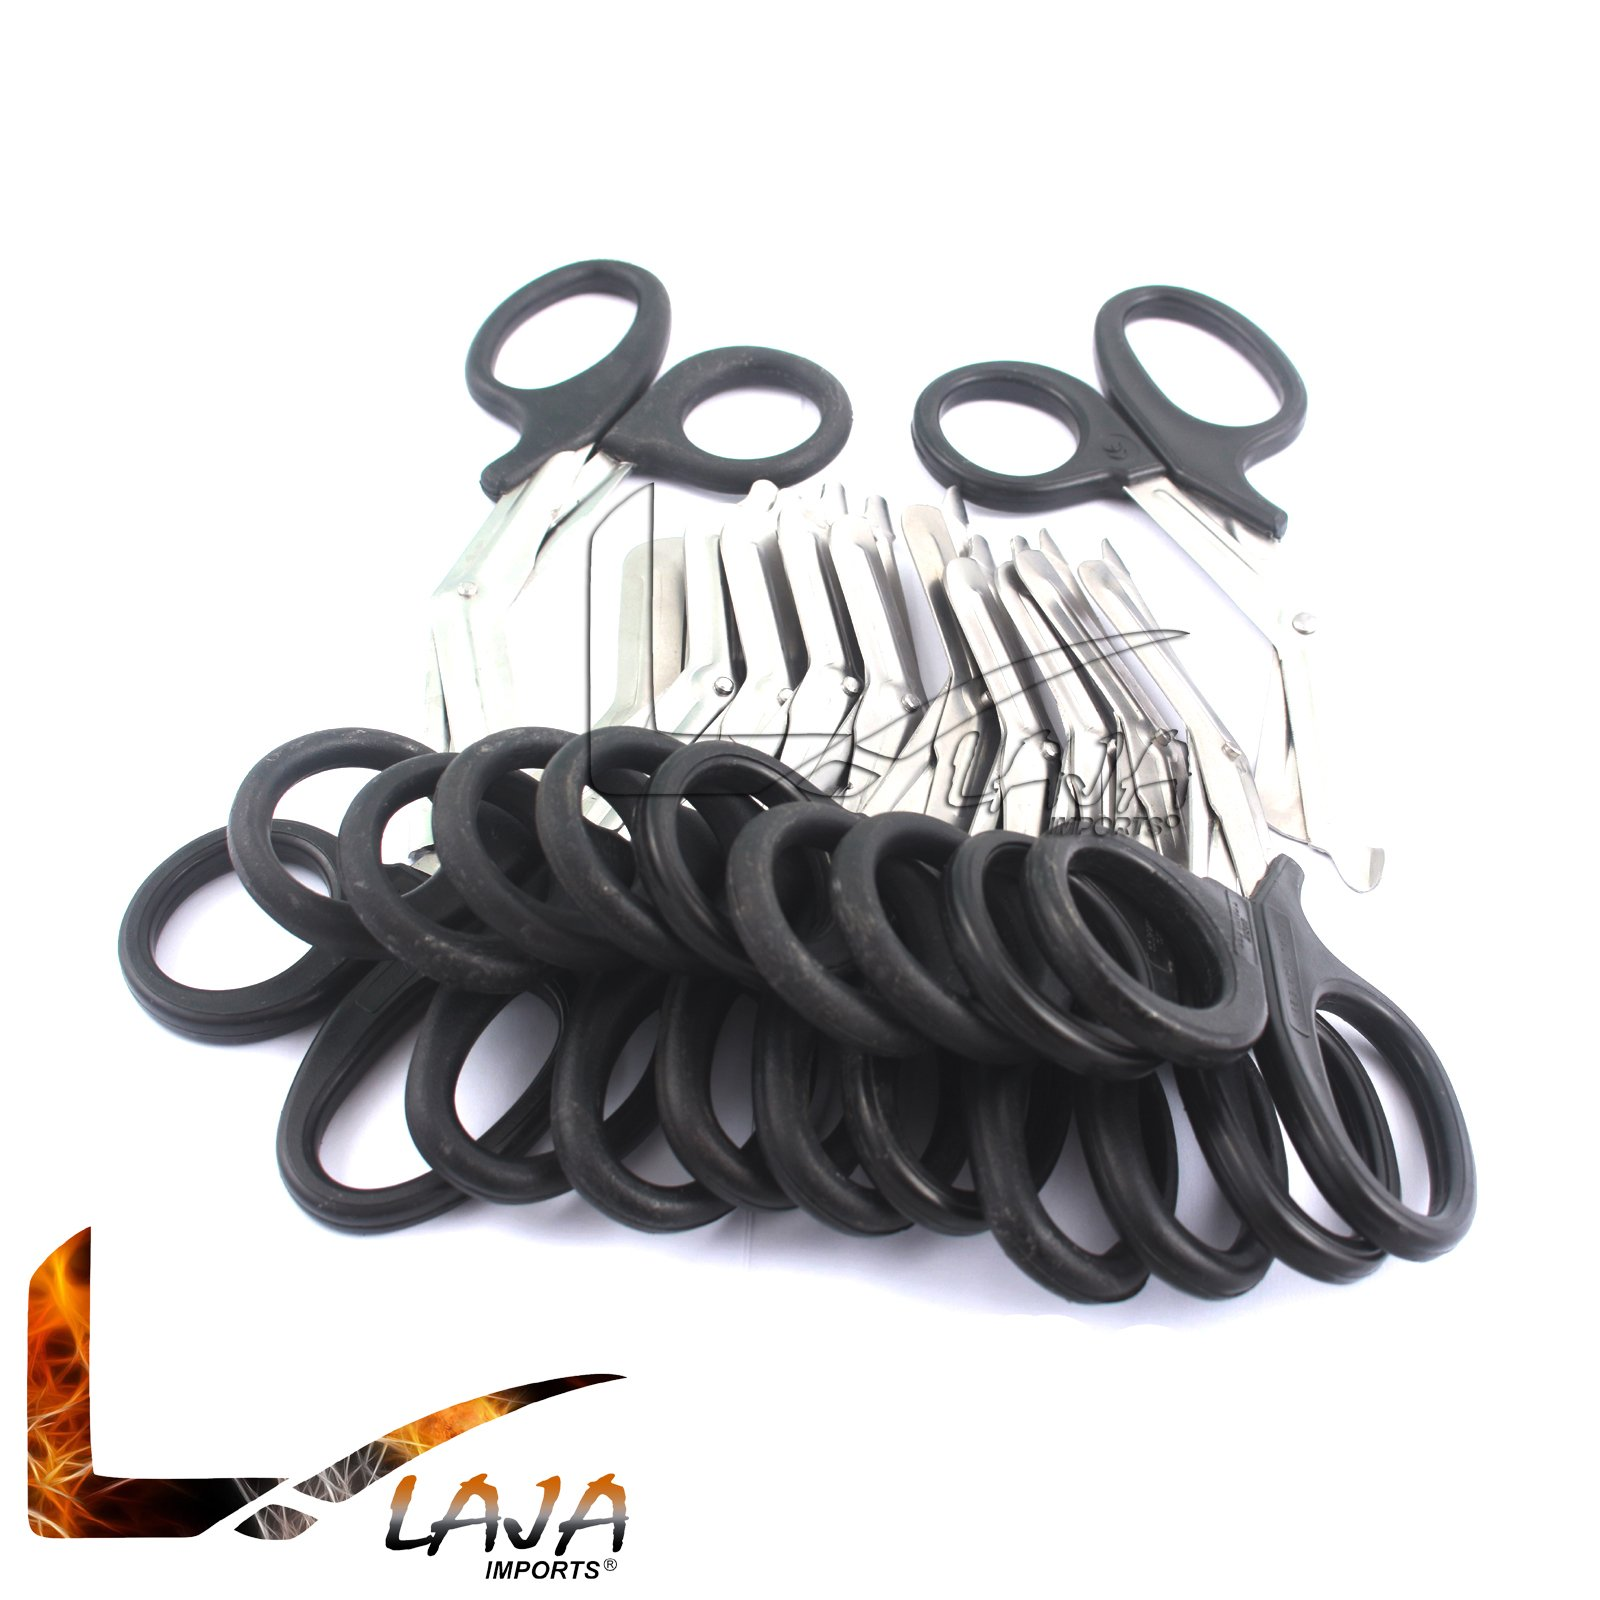 LAJA IMPORTS 100 PCS PARAMEDIC UTILITY BANDAGE FIRST AID STAINLESS STEEL TRAUMA EMT EMS SHEARS SCISSORS 7.25' BLACK by LAJA IMPORTS®